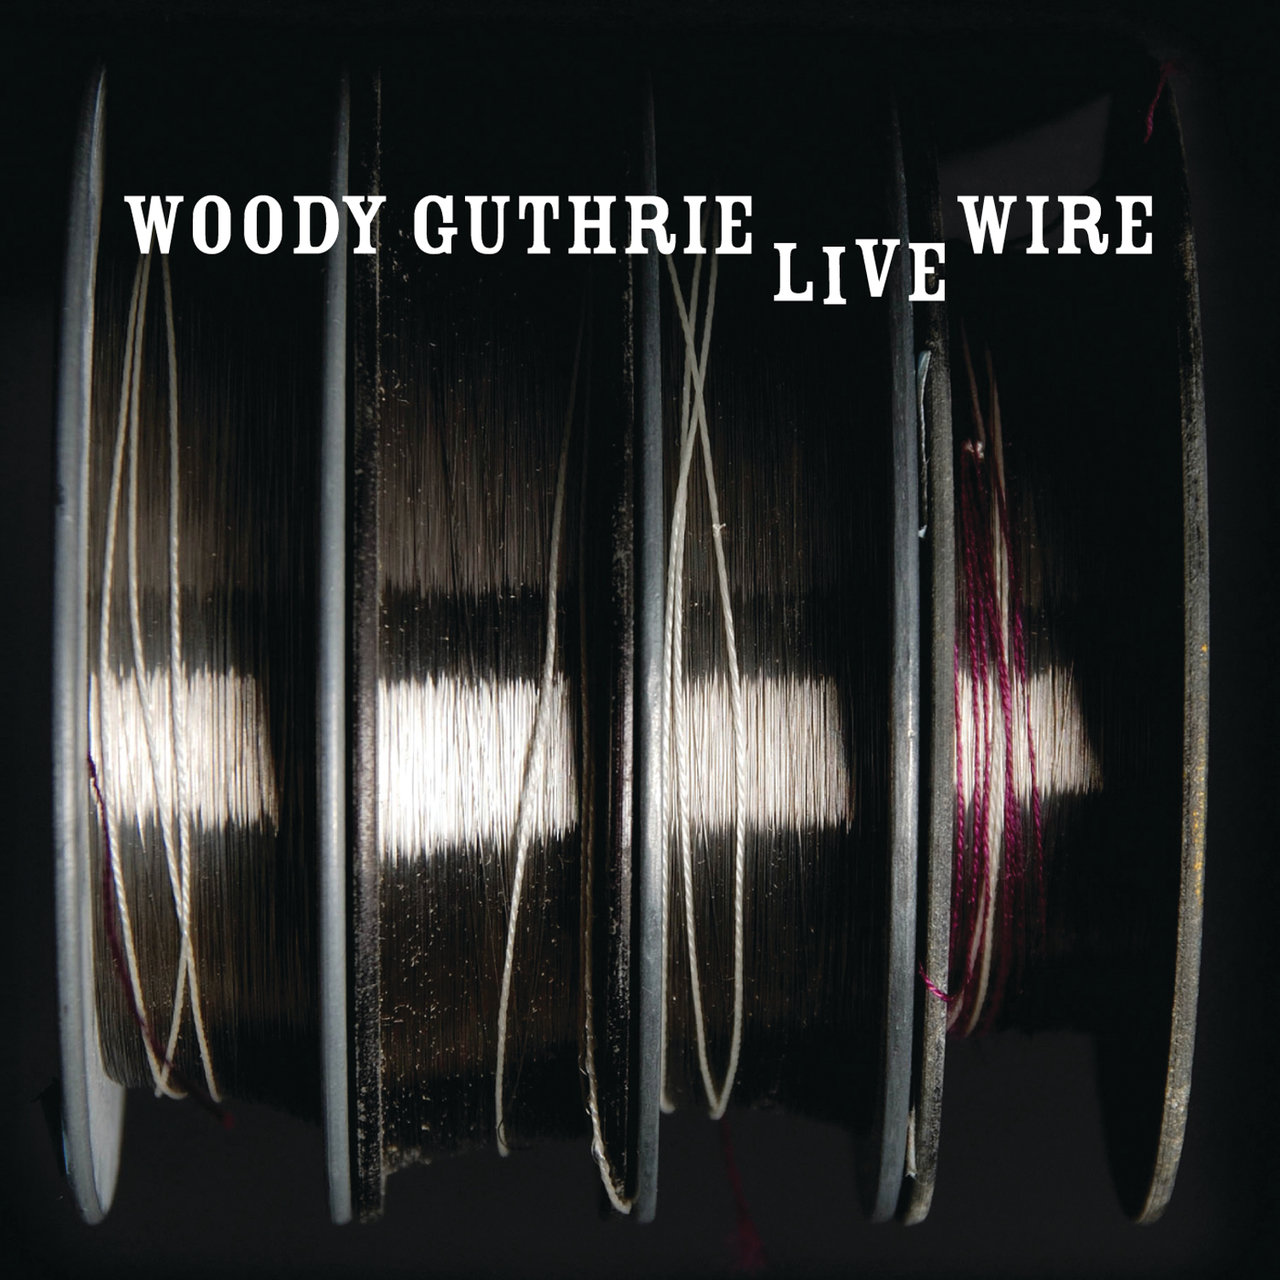 The Live Wire: Woody Guthrie In Performance 1949 / Woody Guthrie TIDAL